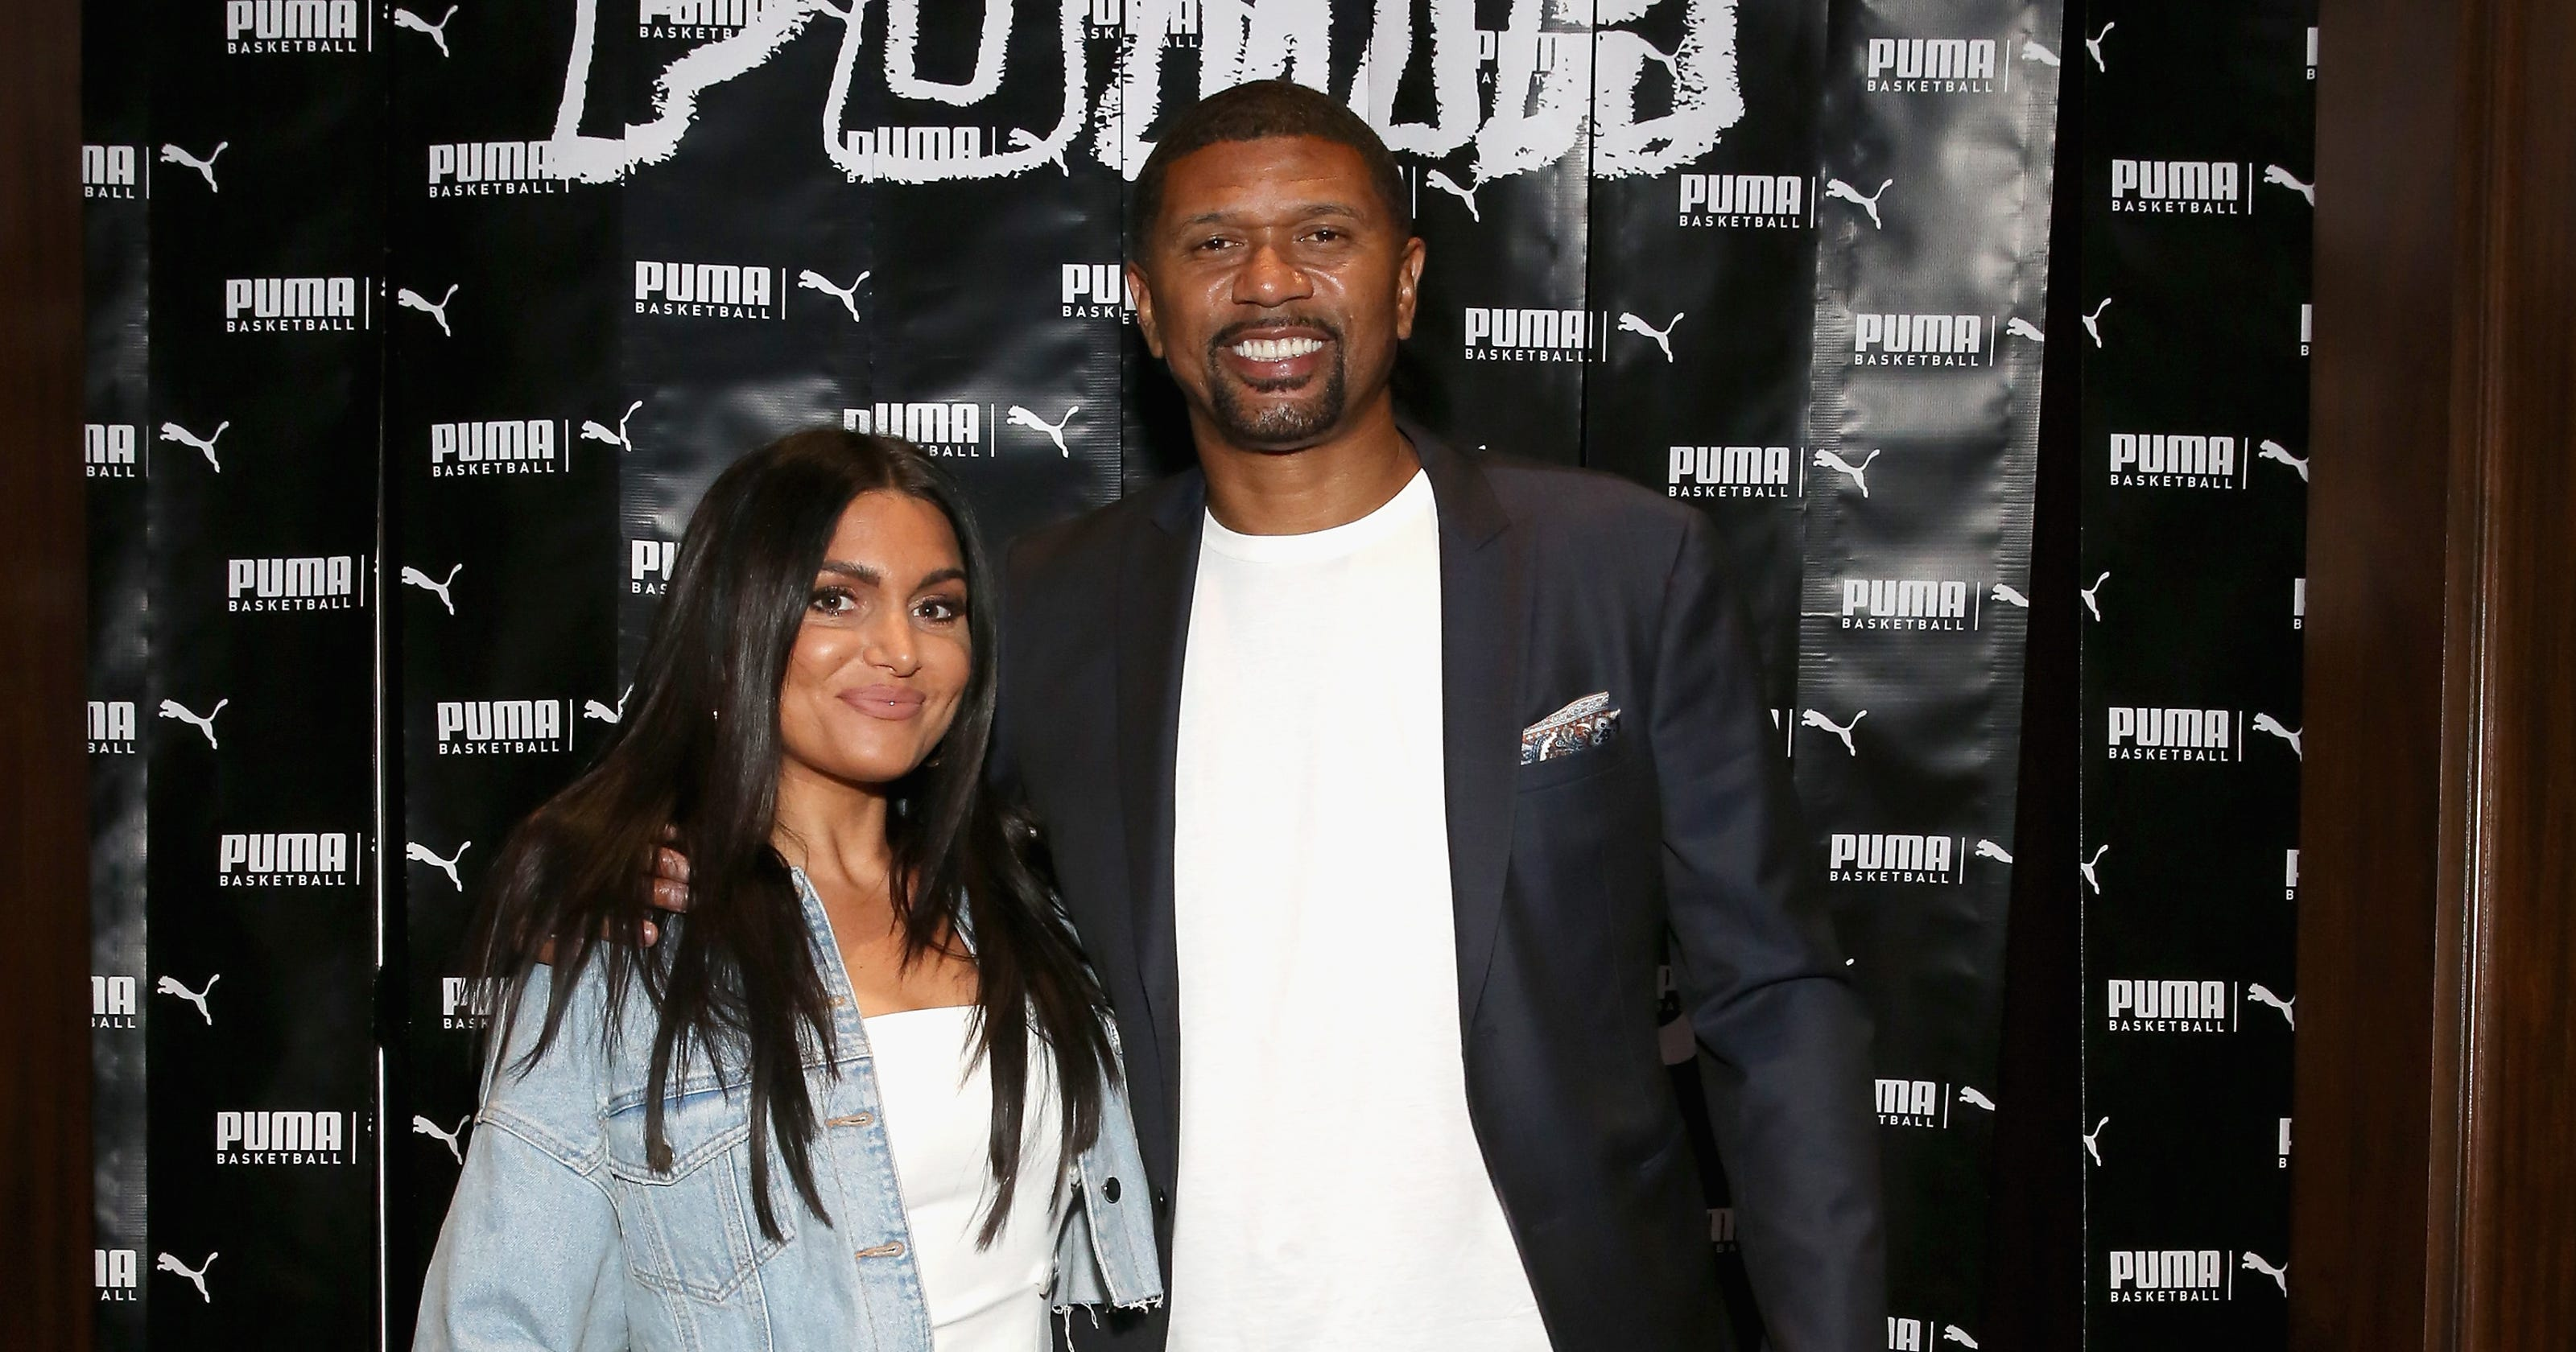 Who is Jalen Rose married to? Molly Qerim